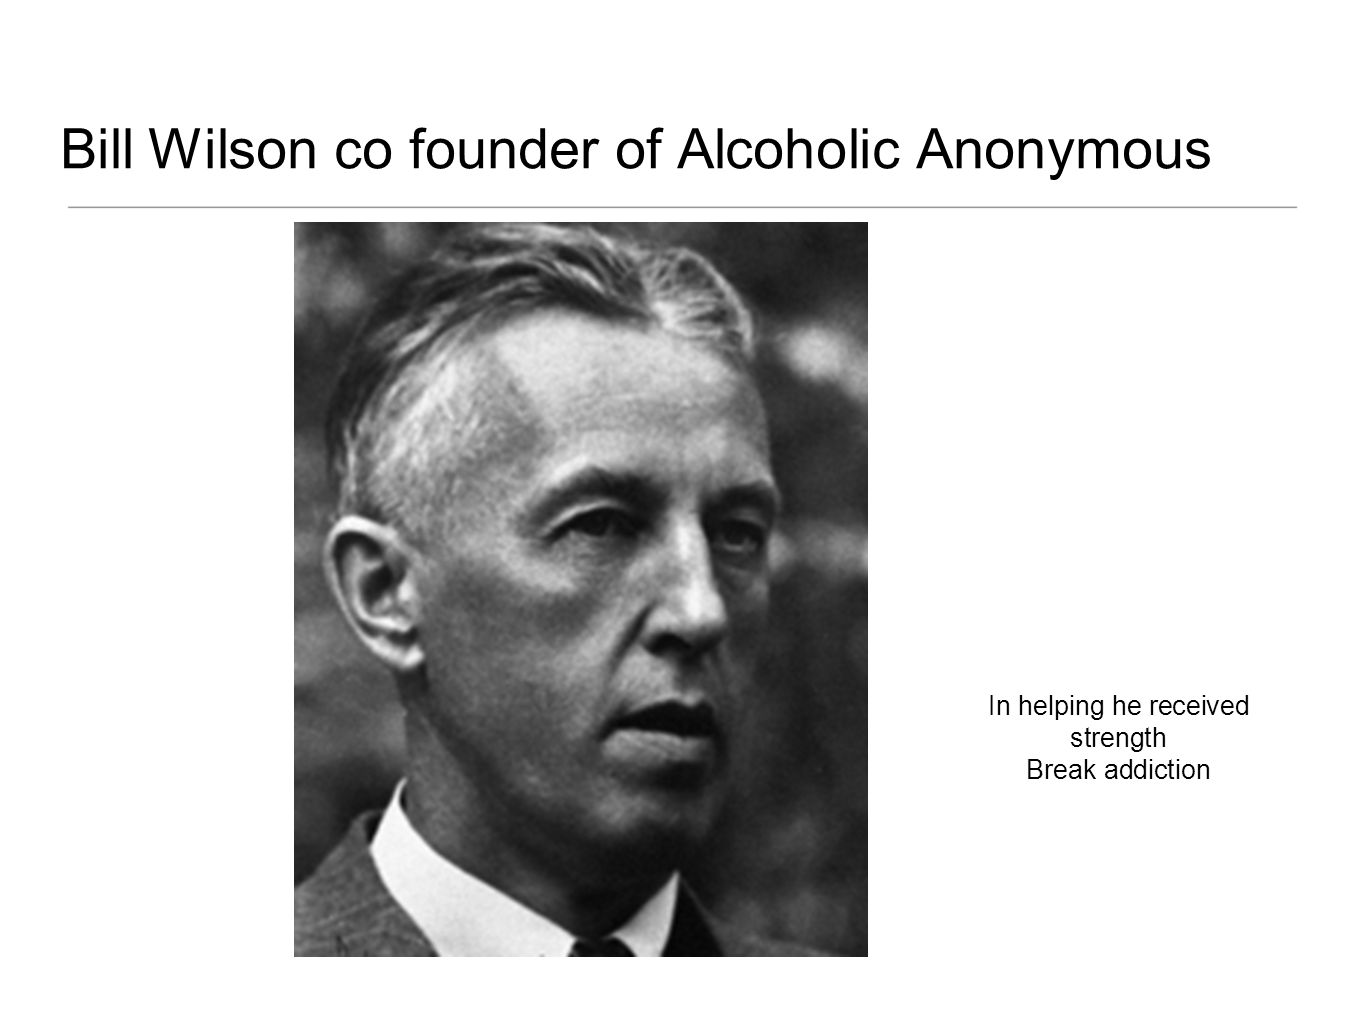 Bill Wilson co founder of Alcoholic Anonymous In helping he received strength Break addiction